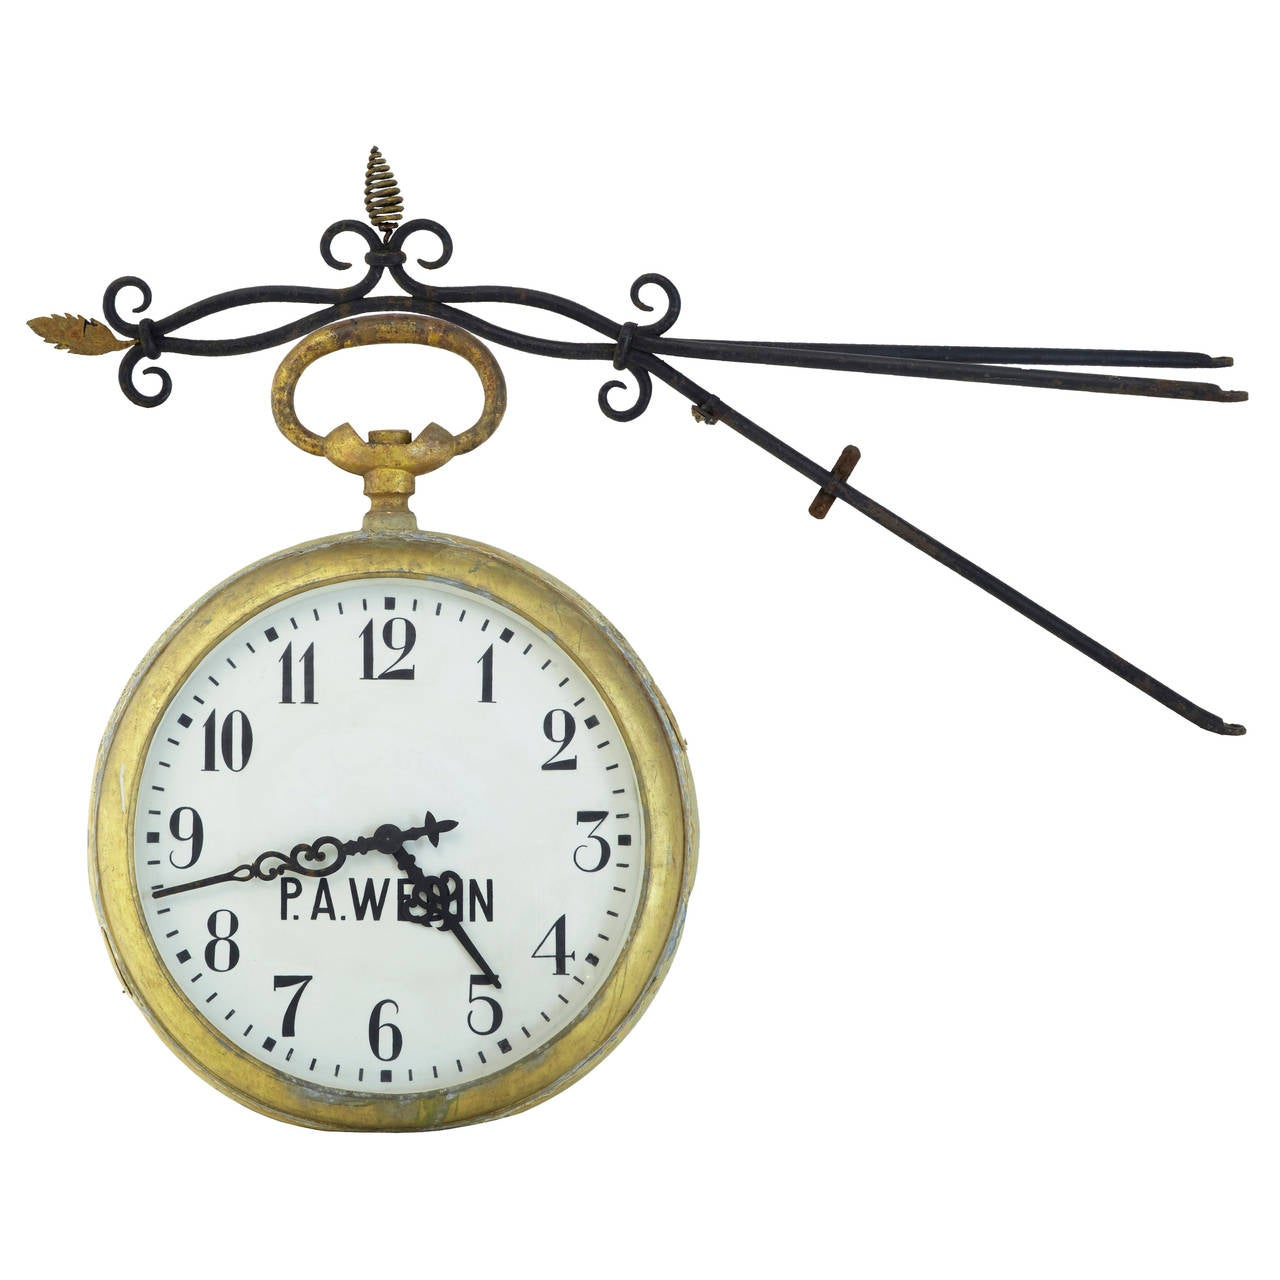 Unique early 20th century tole oversized street clock for Unique clocks for sale